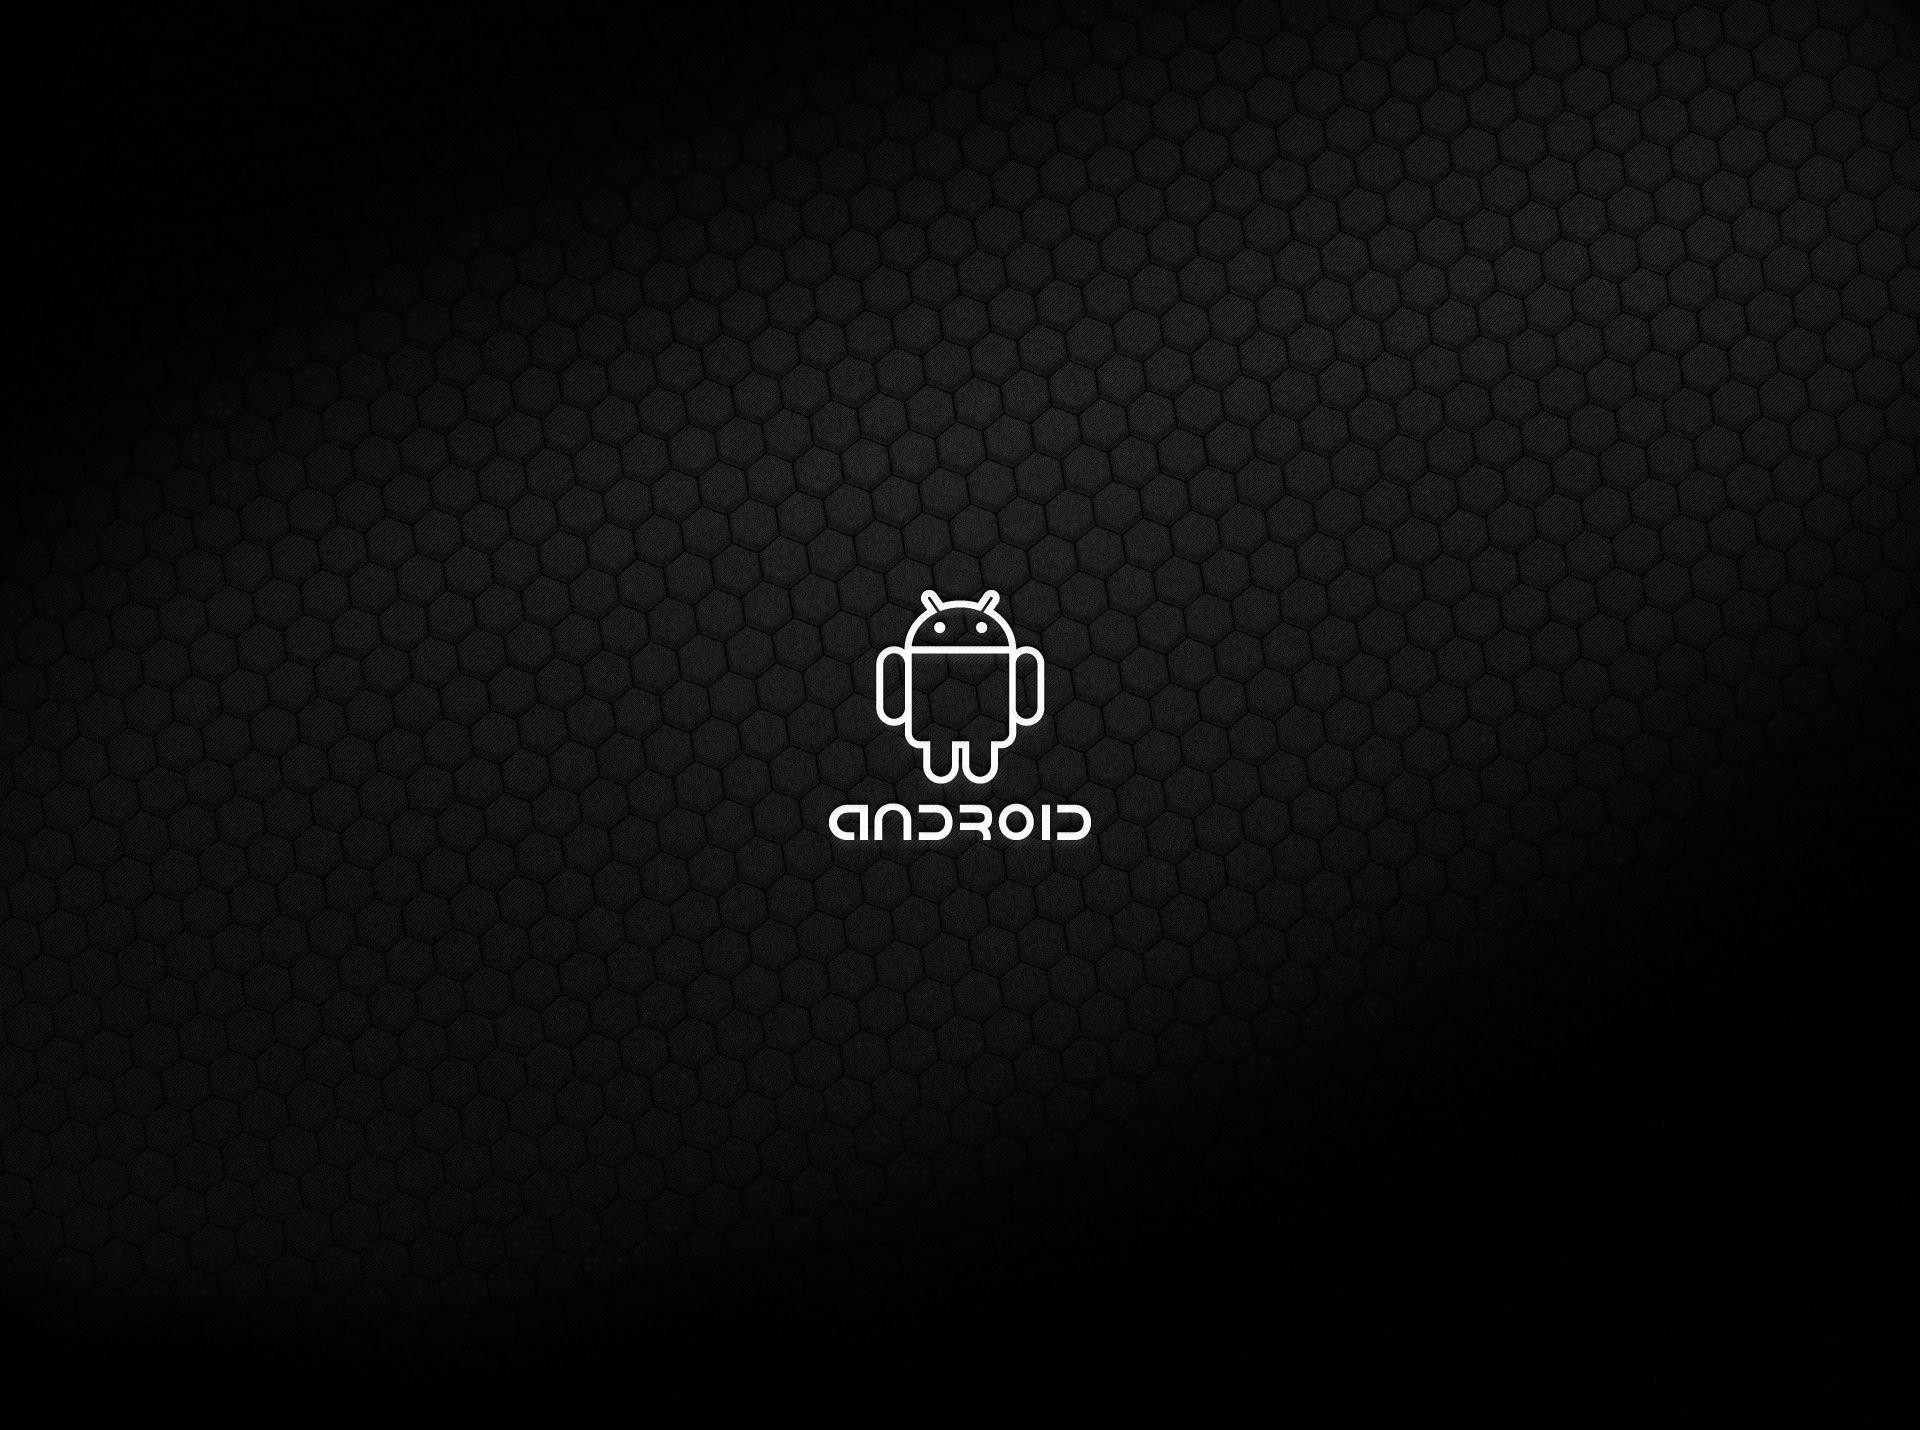 Wallpapers For > Android Phone Wallpaper Black